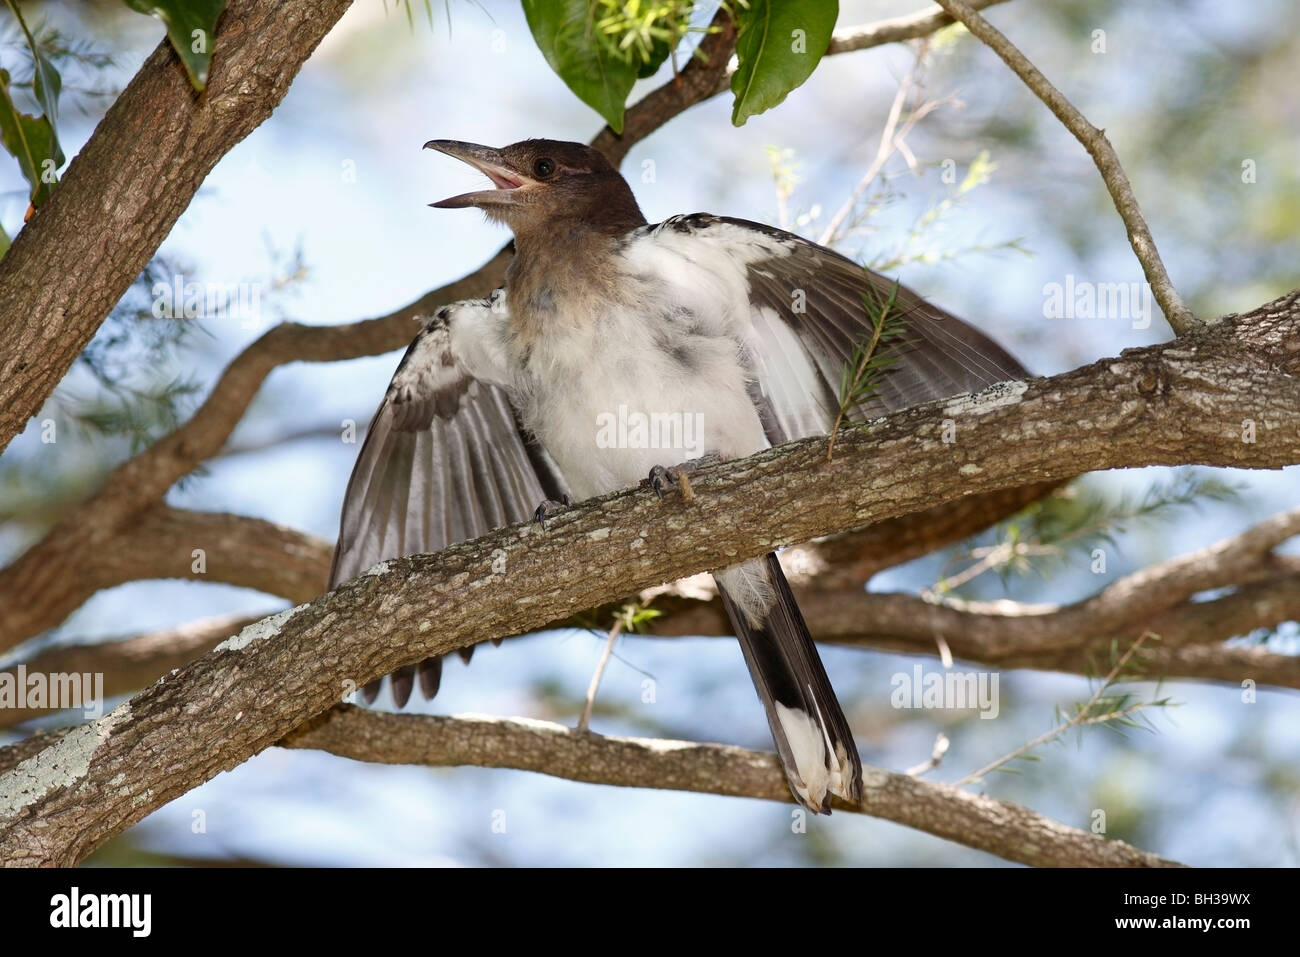 Juvenile Pied, or Black Headed Butcherbird, Cracticus nigrogularis, with wings open, calling for food from a parent. - Stock Image